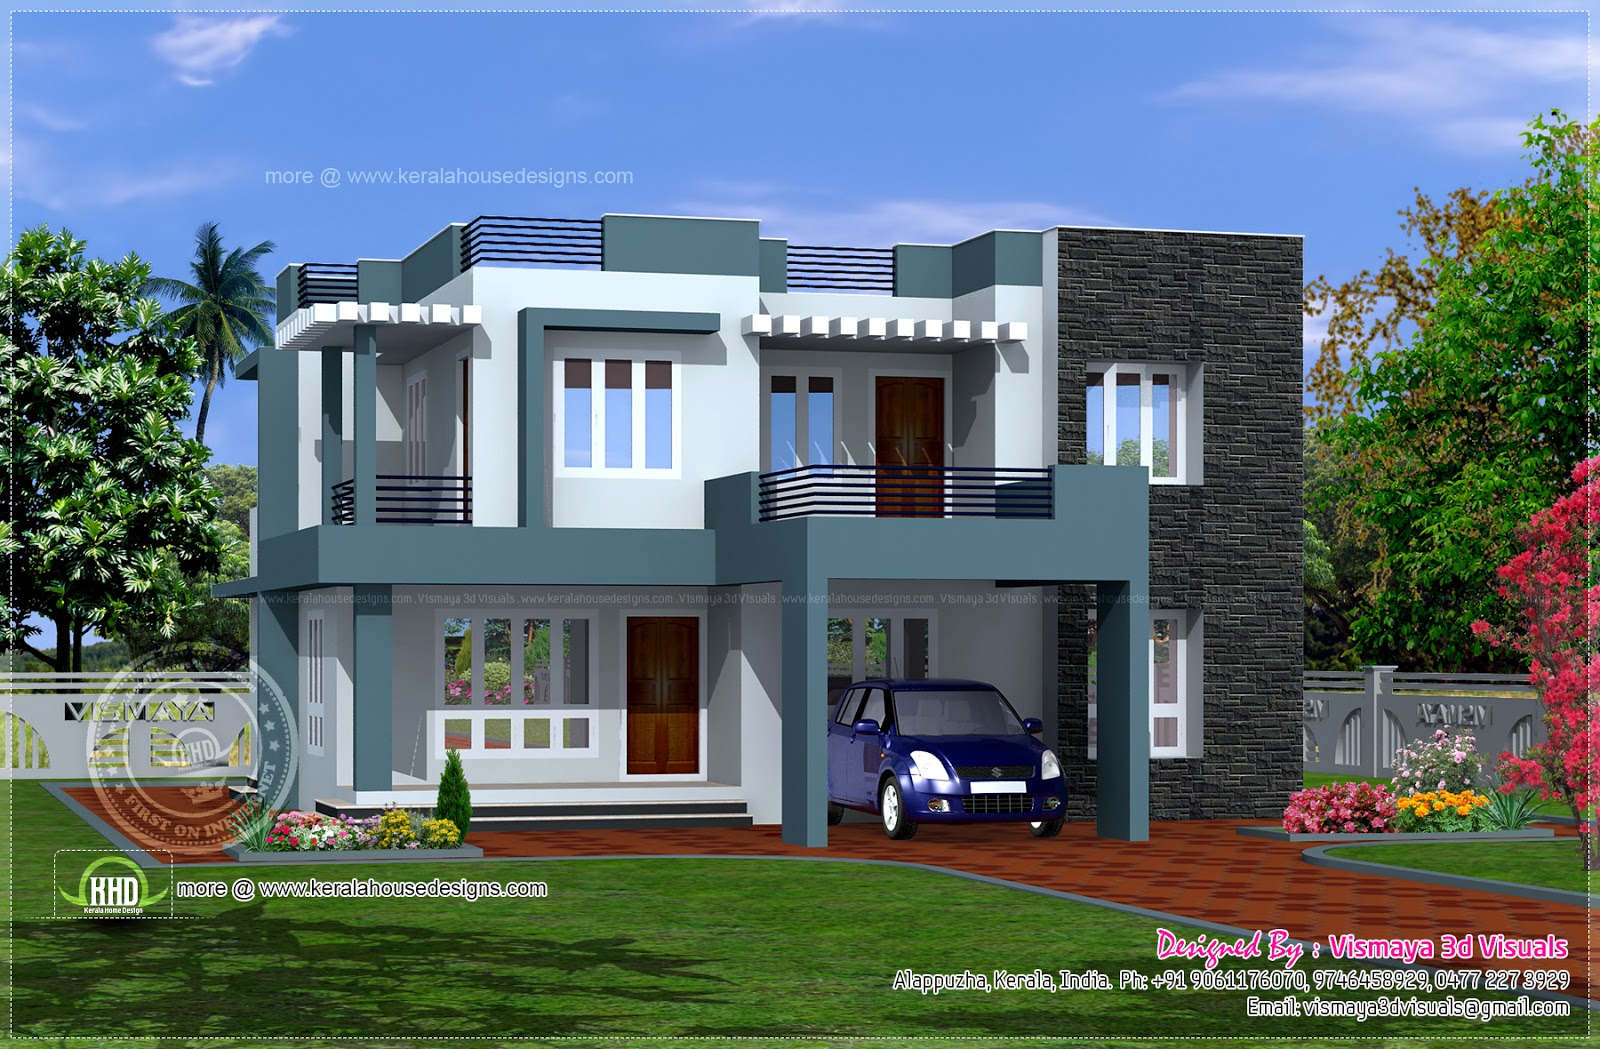 Simple contemporary style villa plan kerala home design for Kerala style villa plans